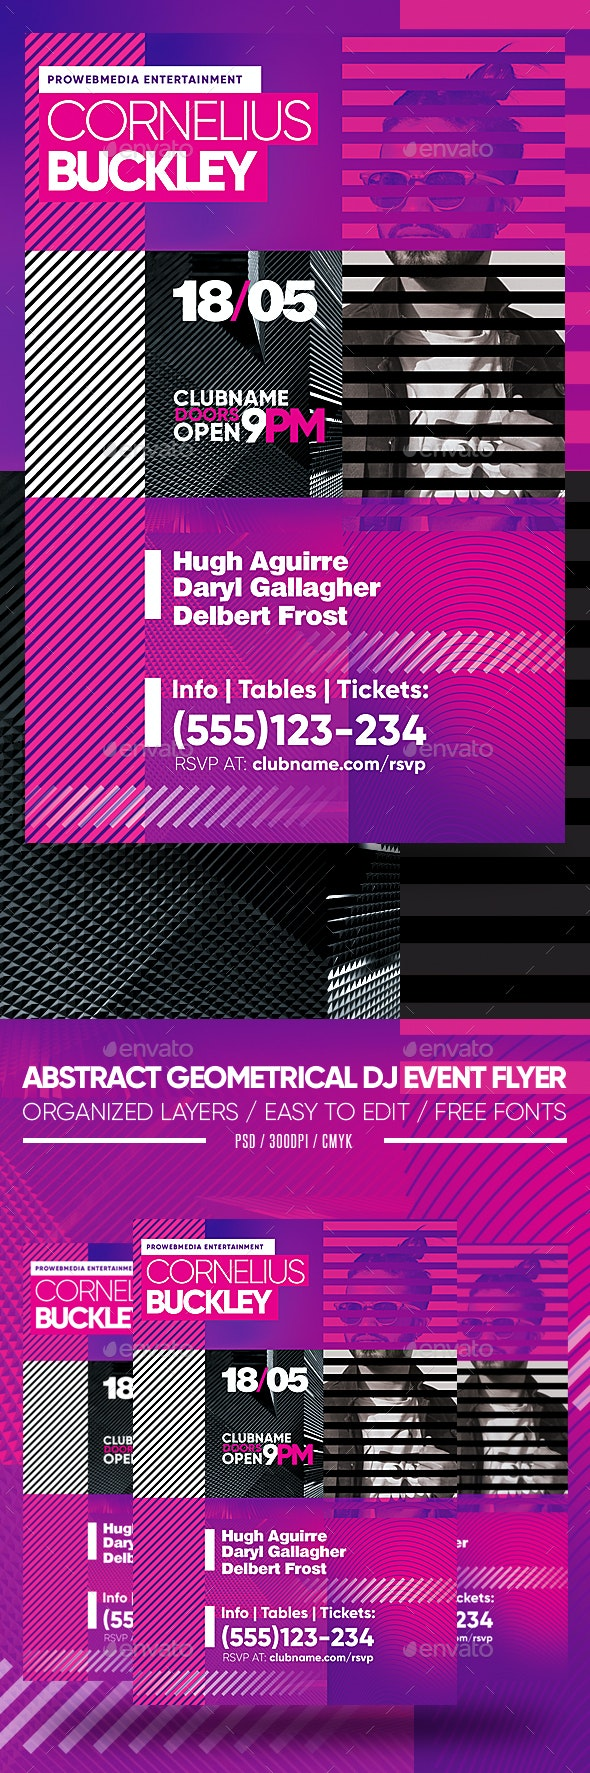 Abstract Geometrical DJ Event Flyer - Clubs & Parties Events